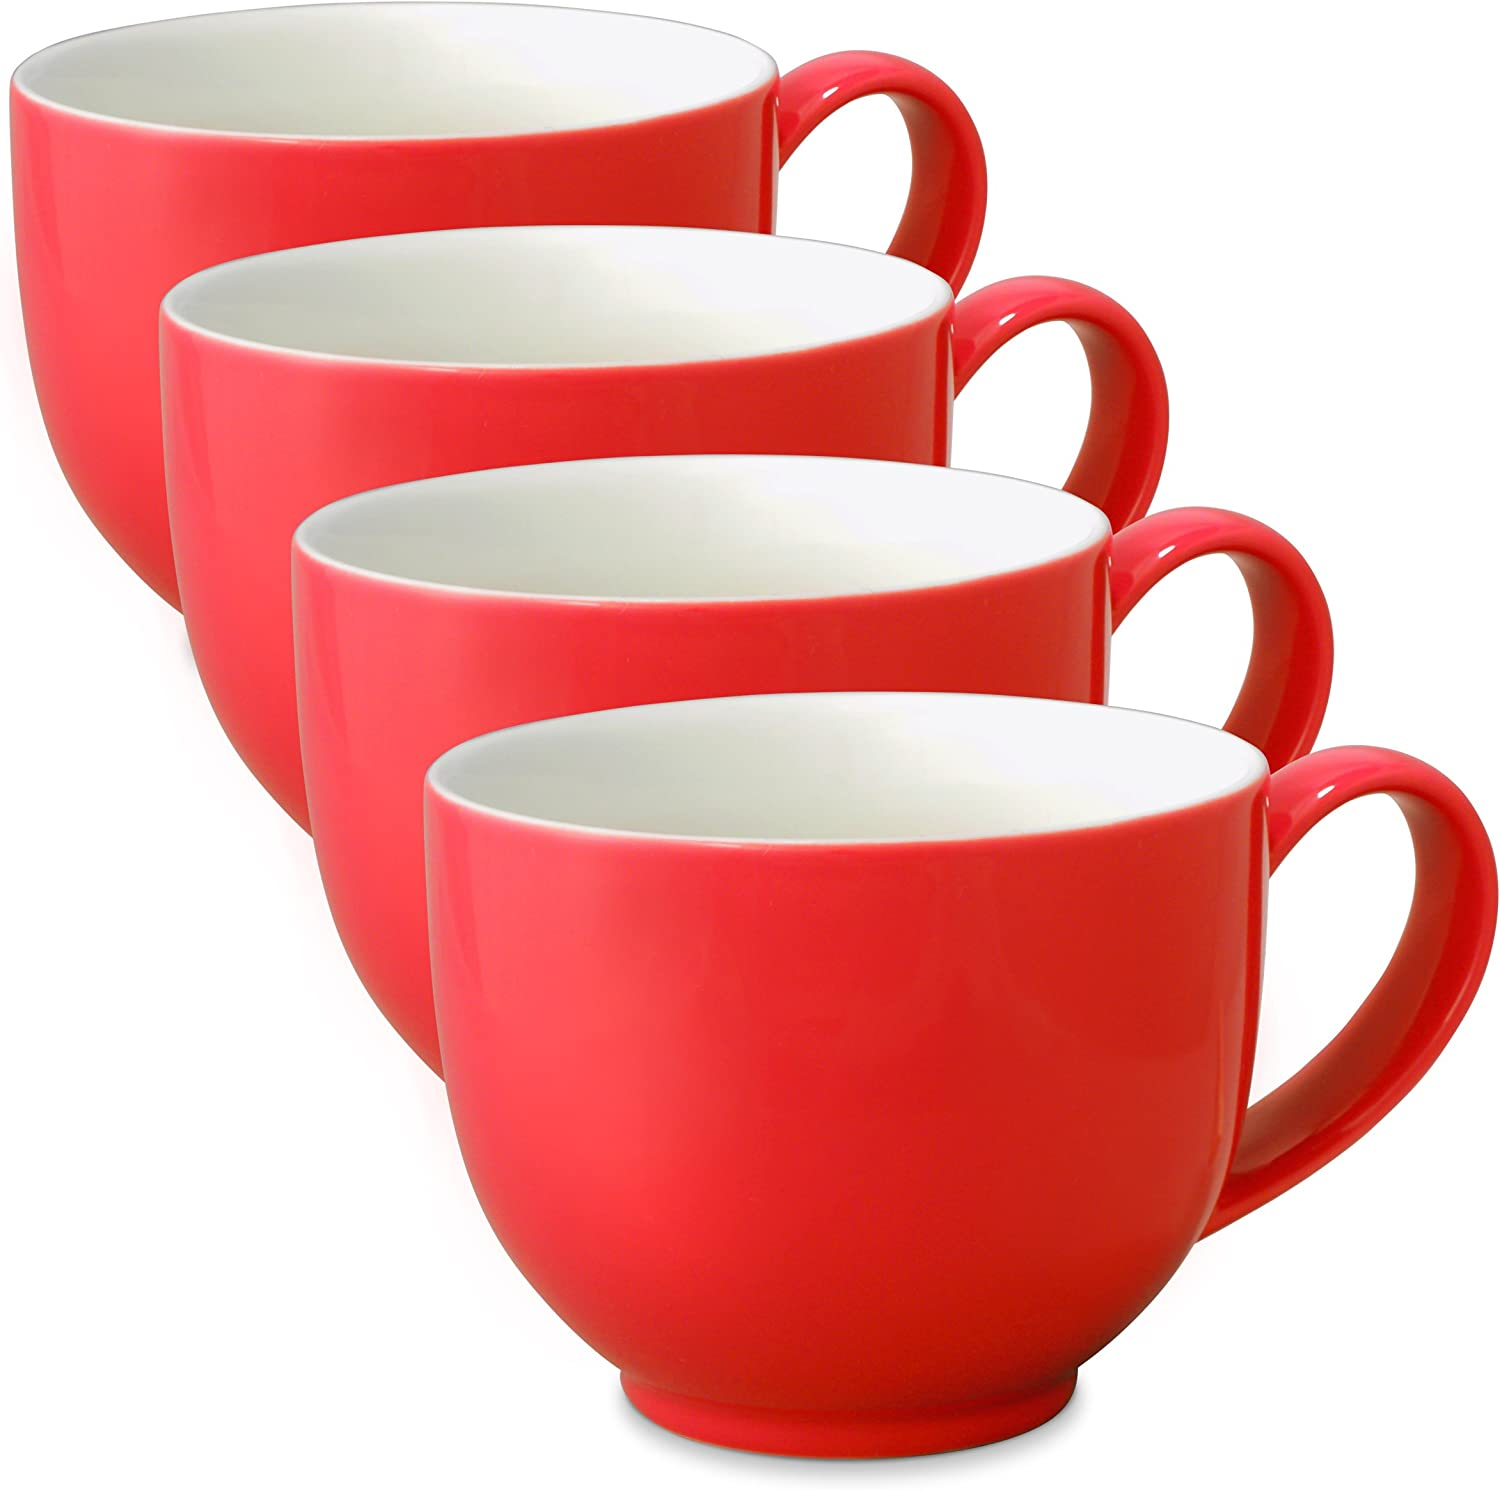 FORLIFE Q Tea Max 52% OFF Cup with Handle Online limited product 10 oz Set 4 Red of